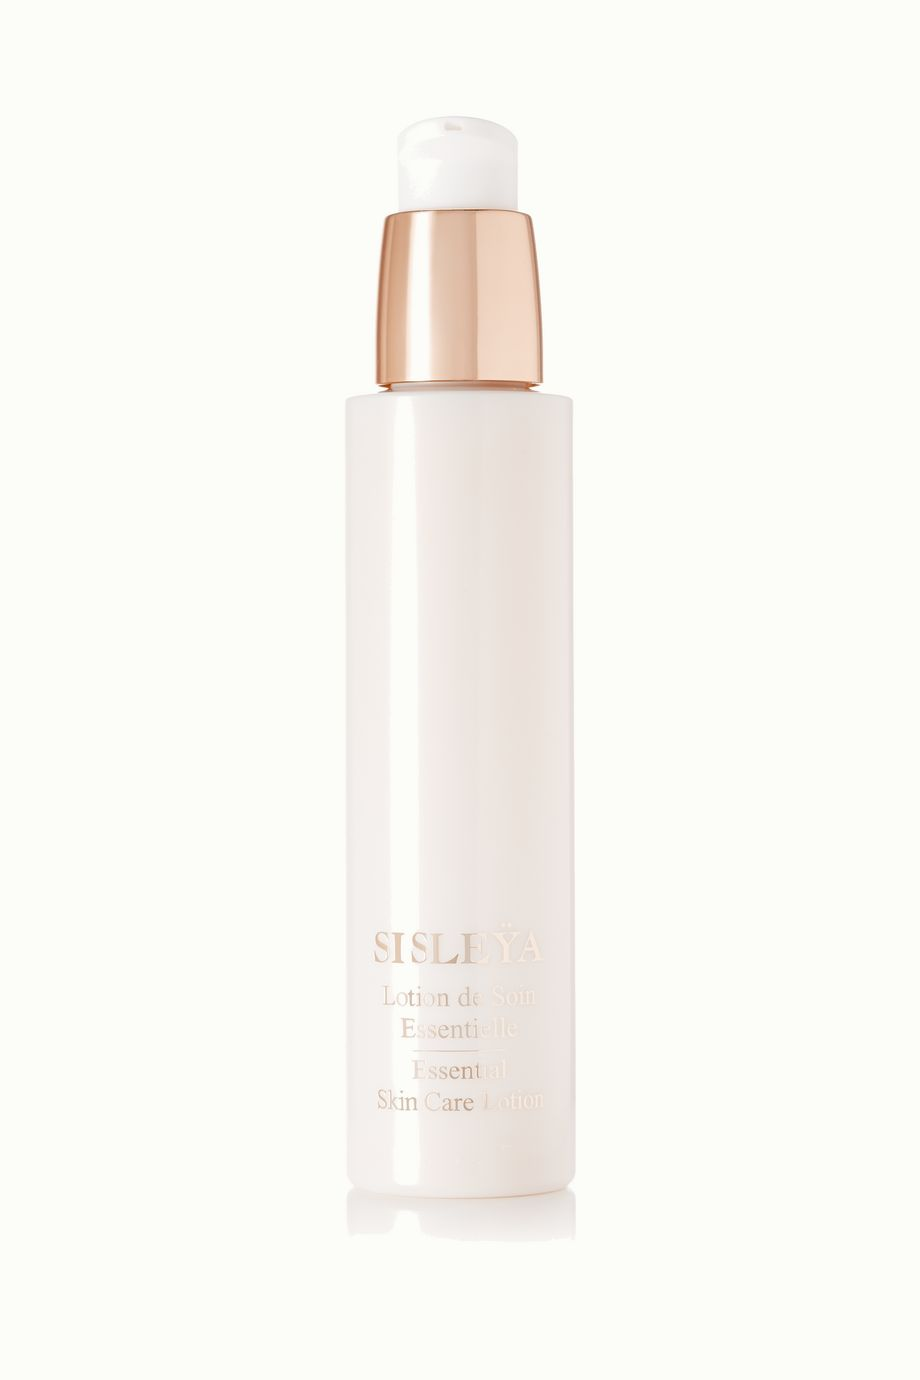 Sisley Sisleÿa Essential Skin Care Lotion, 150ml